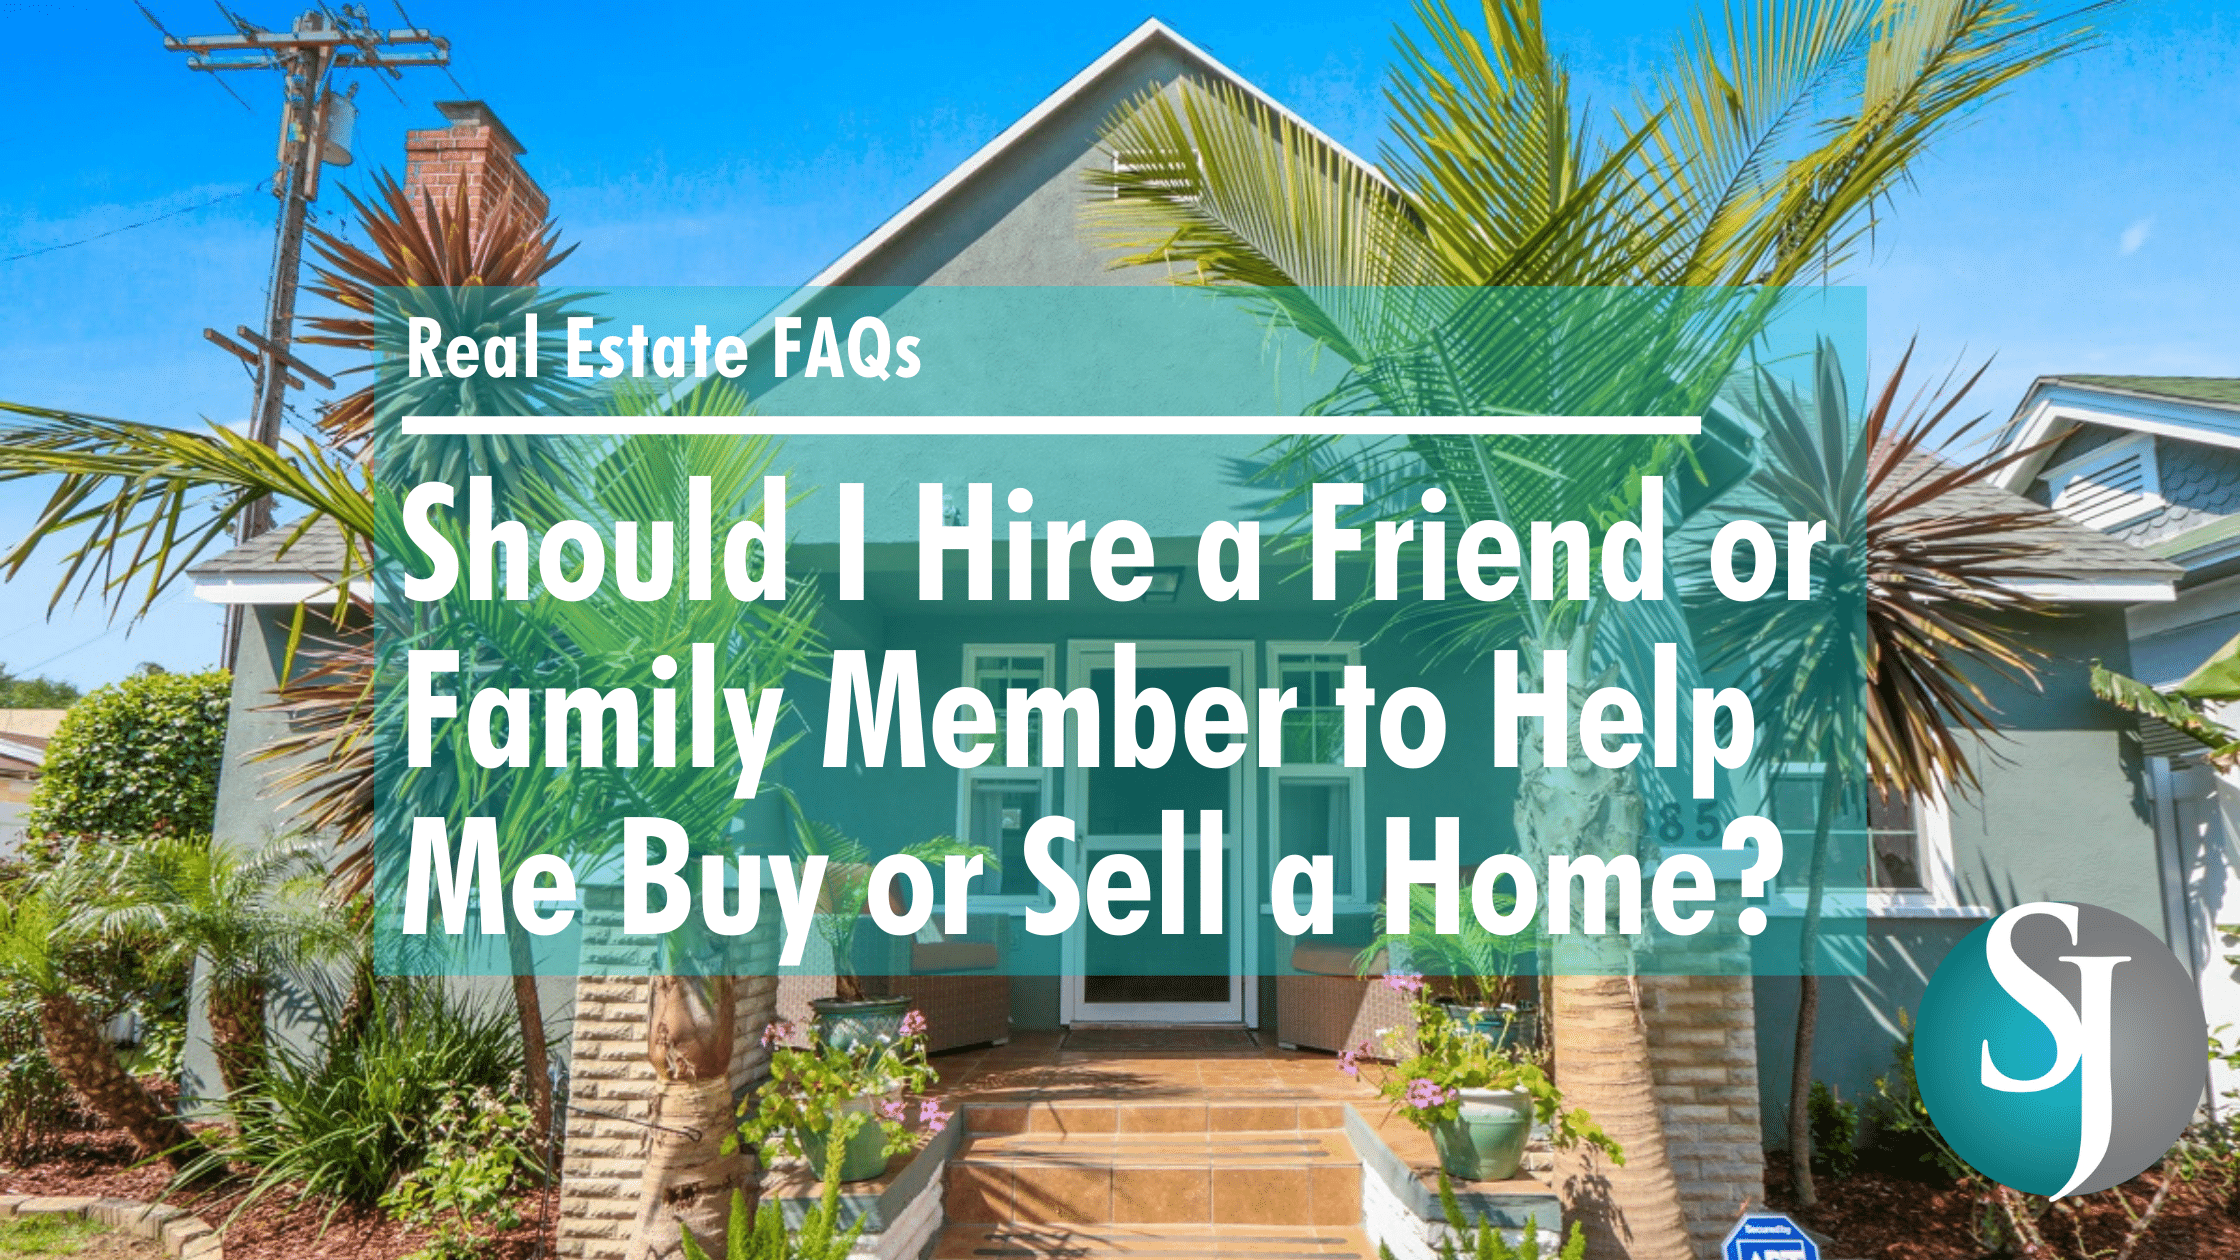 Should I Hire a Friend or Family Member to Help Me Buy or Sell a Home?